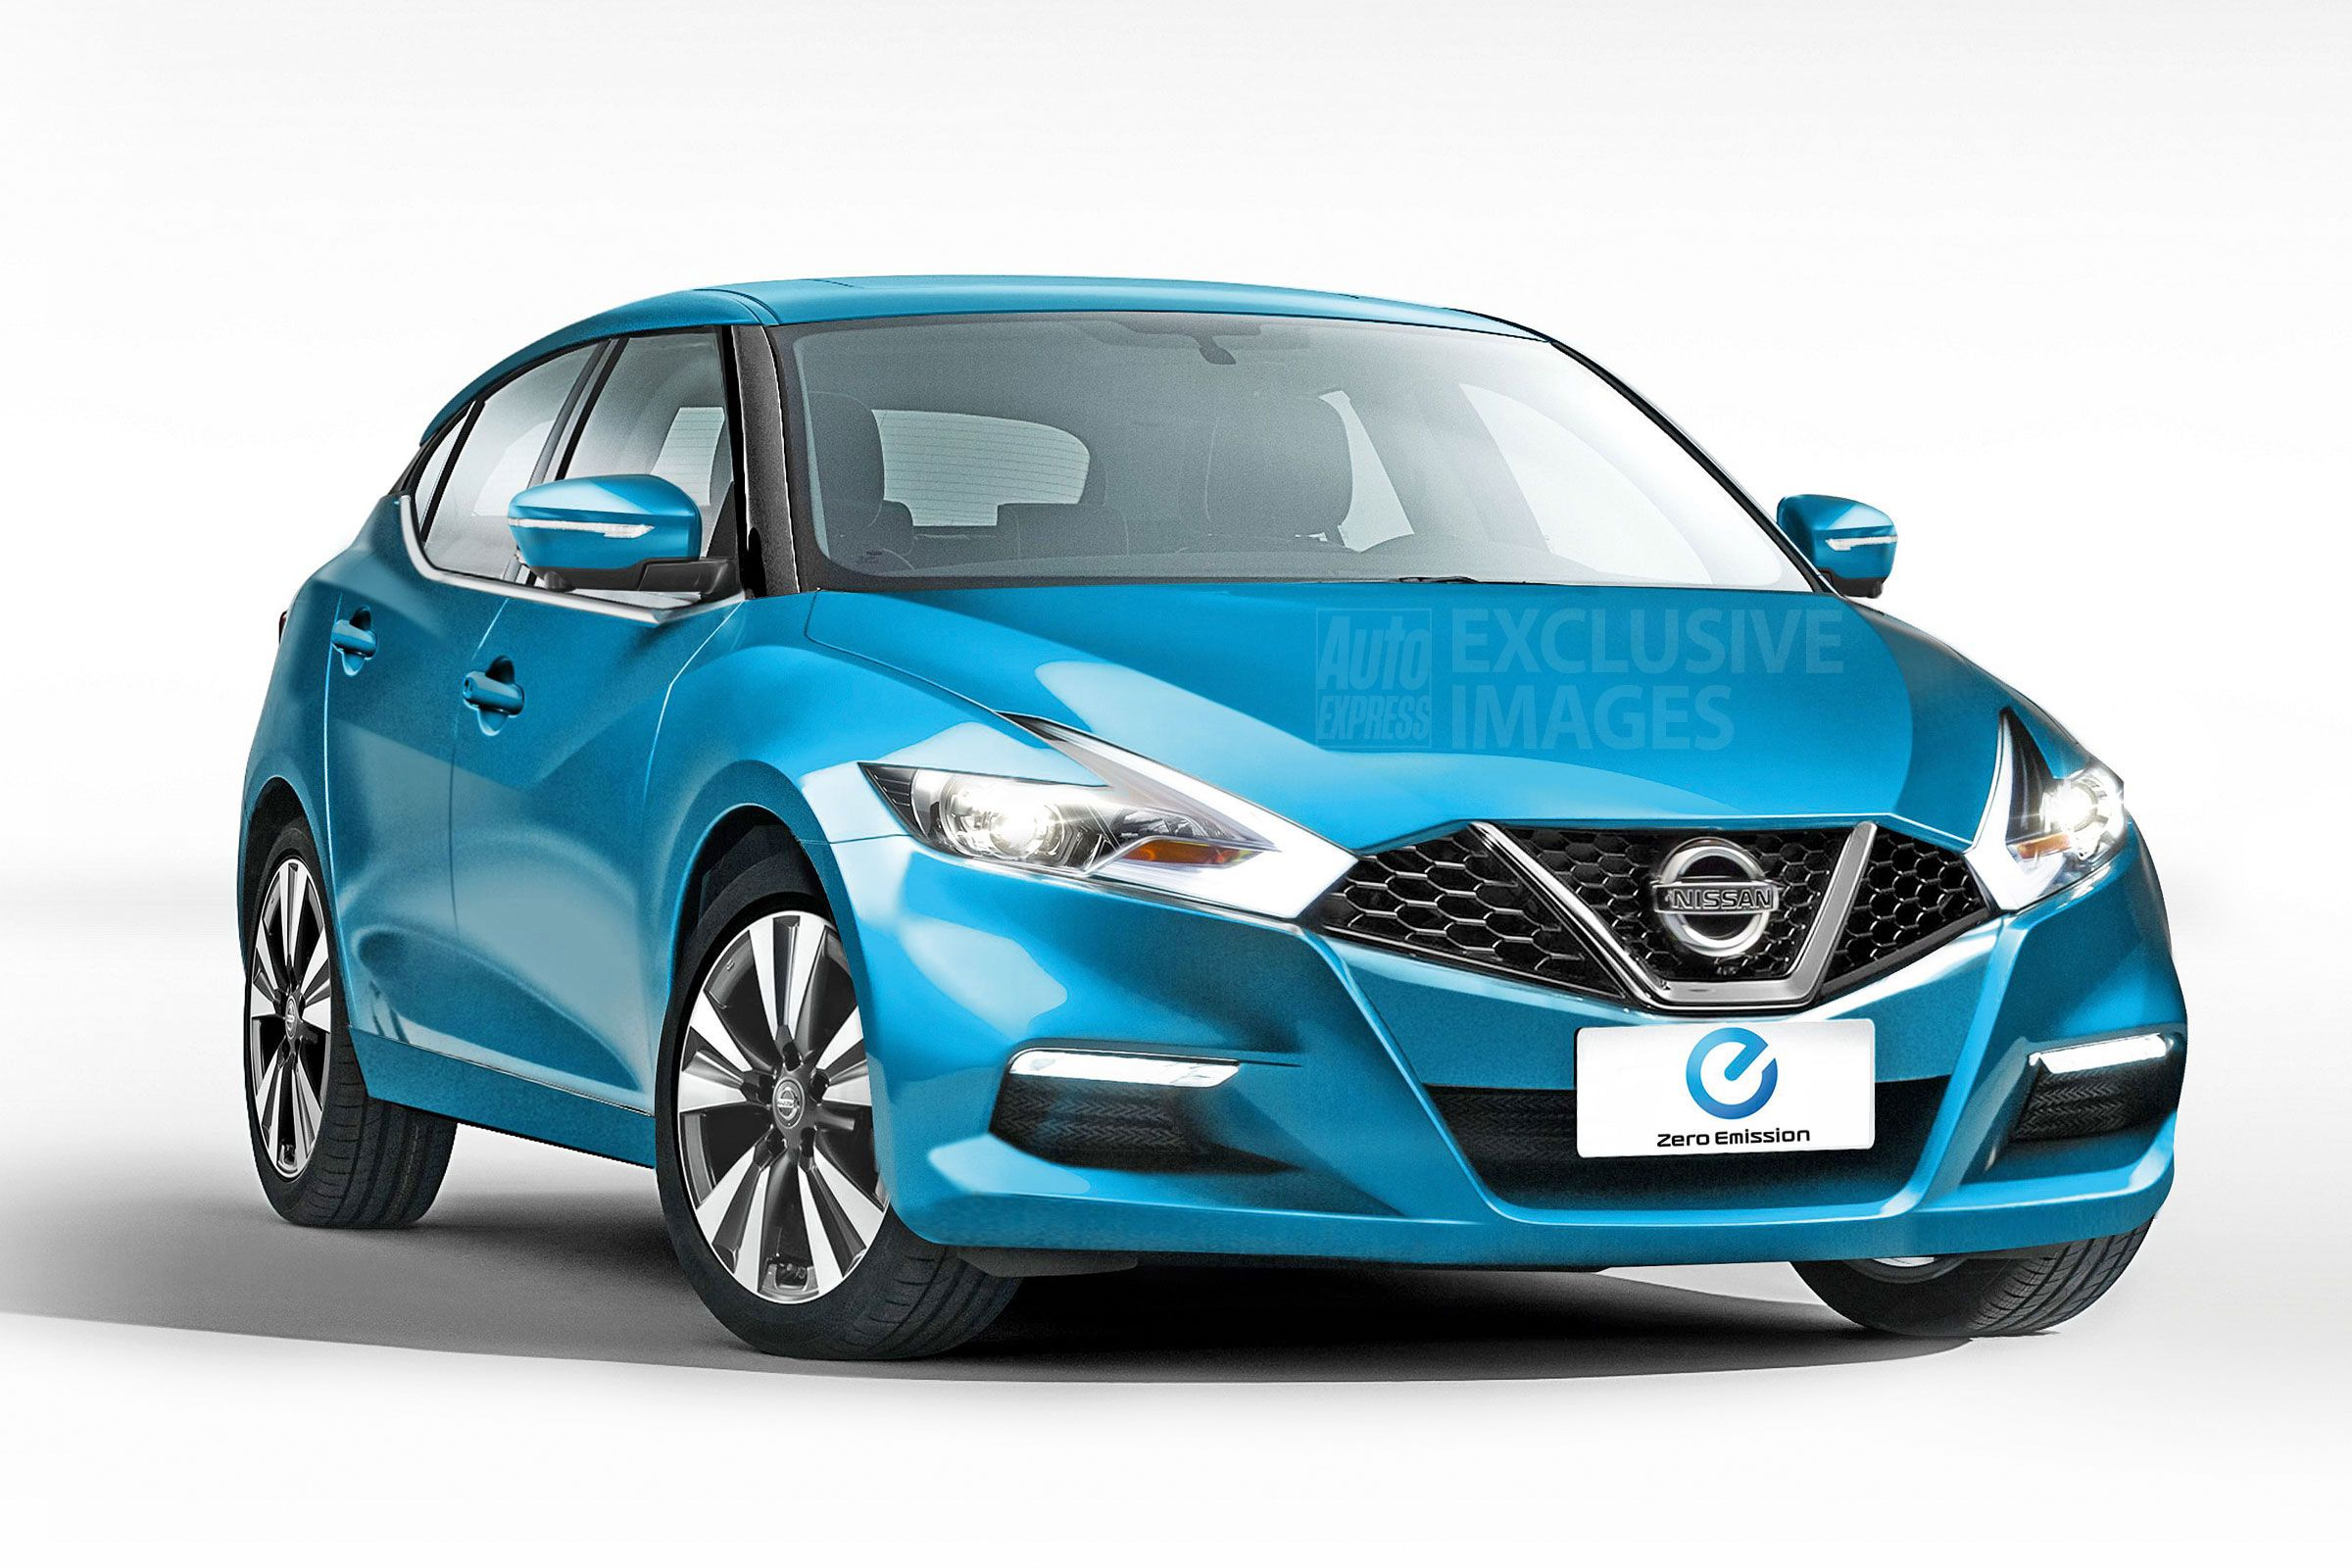 new car release 2016 ukExclusive images show better look for new Nissan Leaf while new